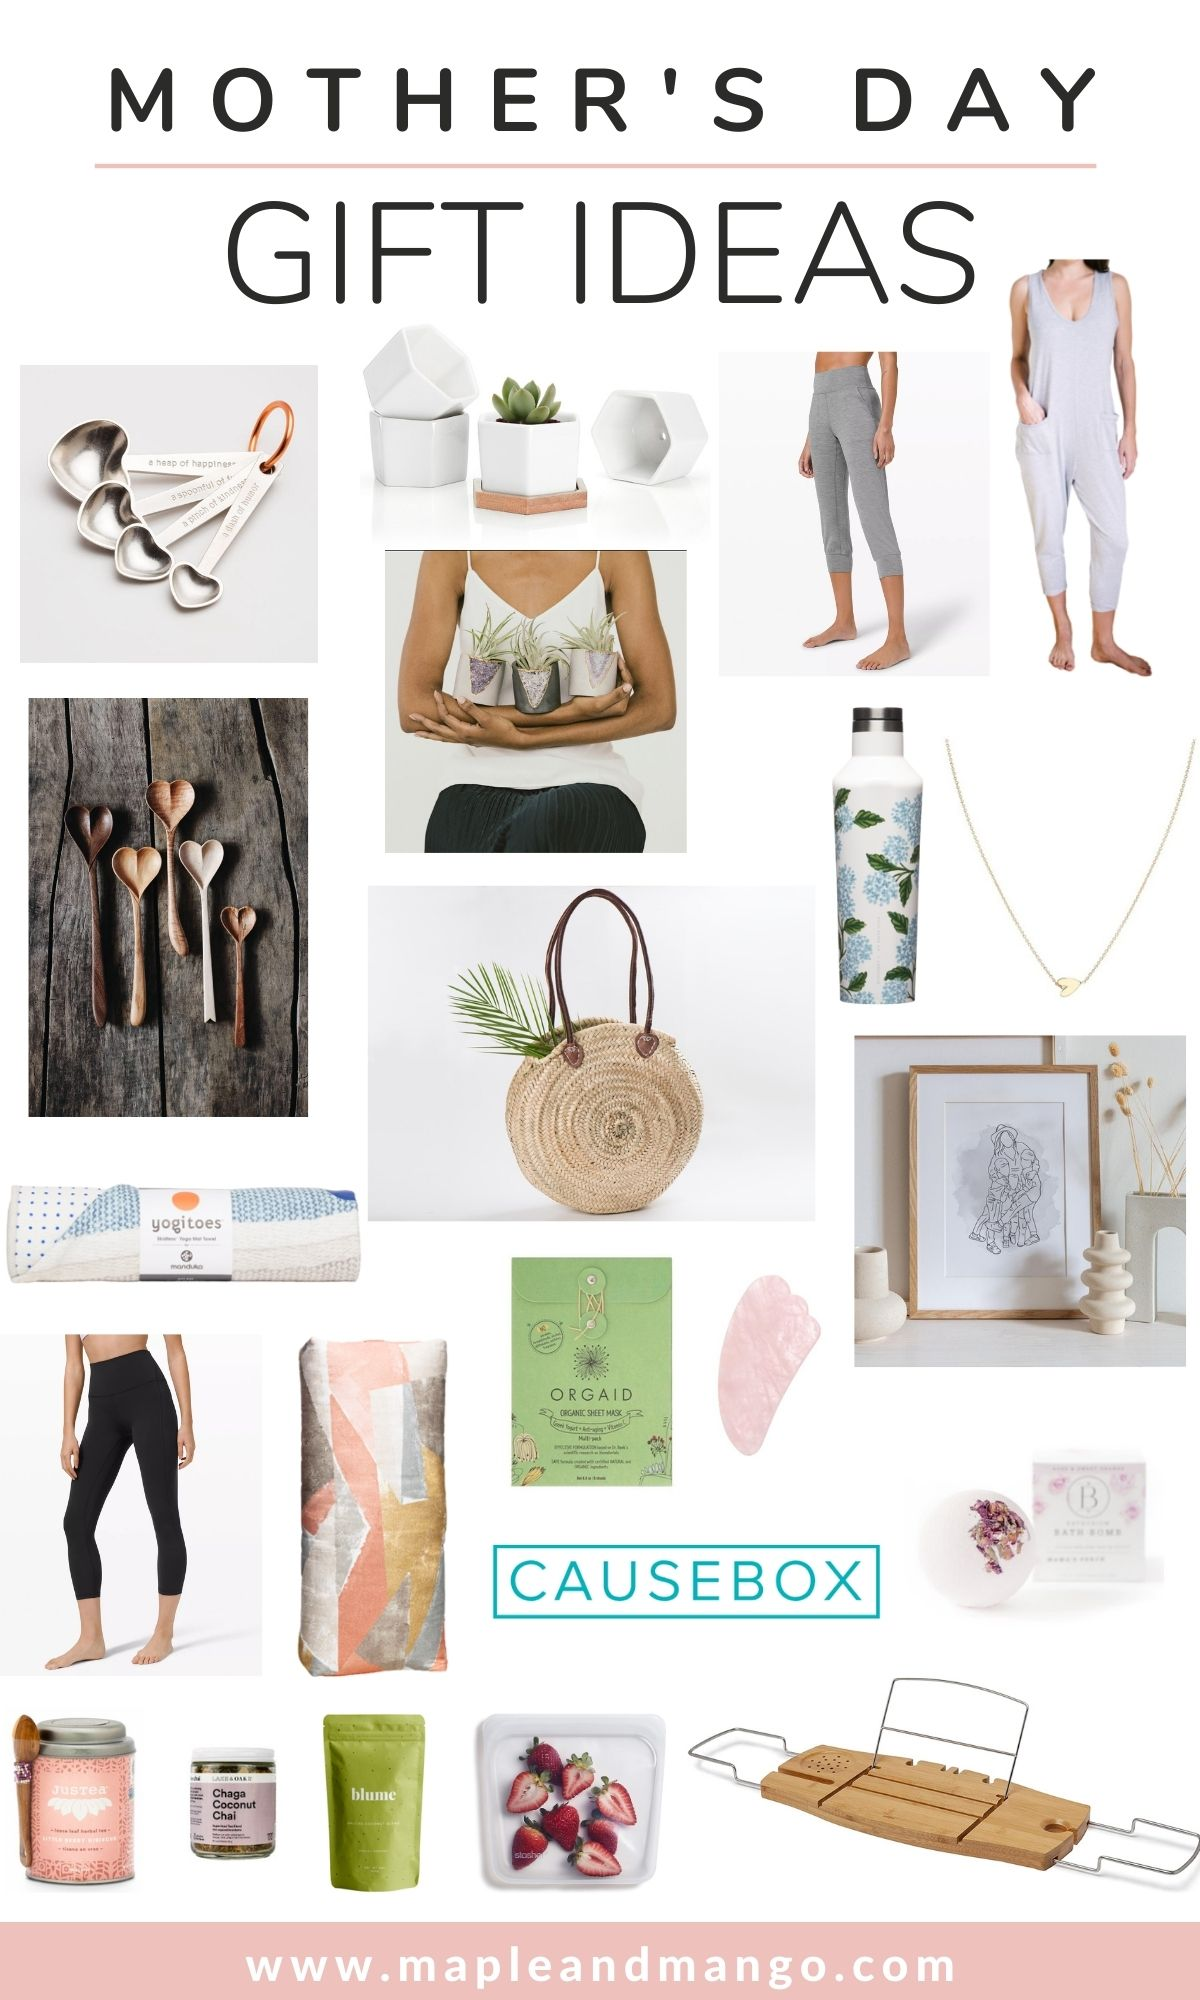 Collage image of a variety of Mother's Day gift ideas.